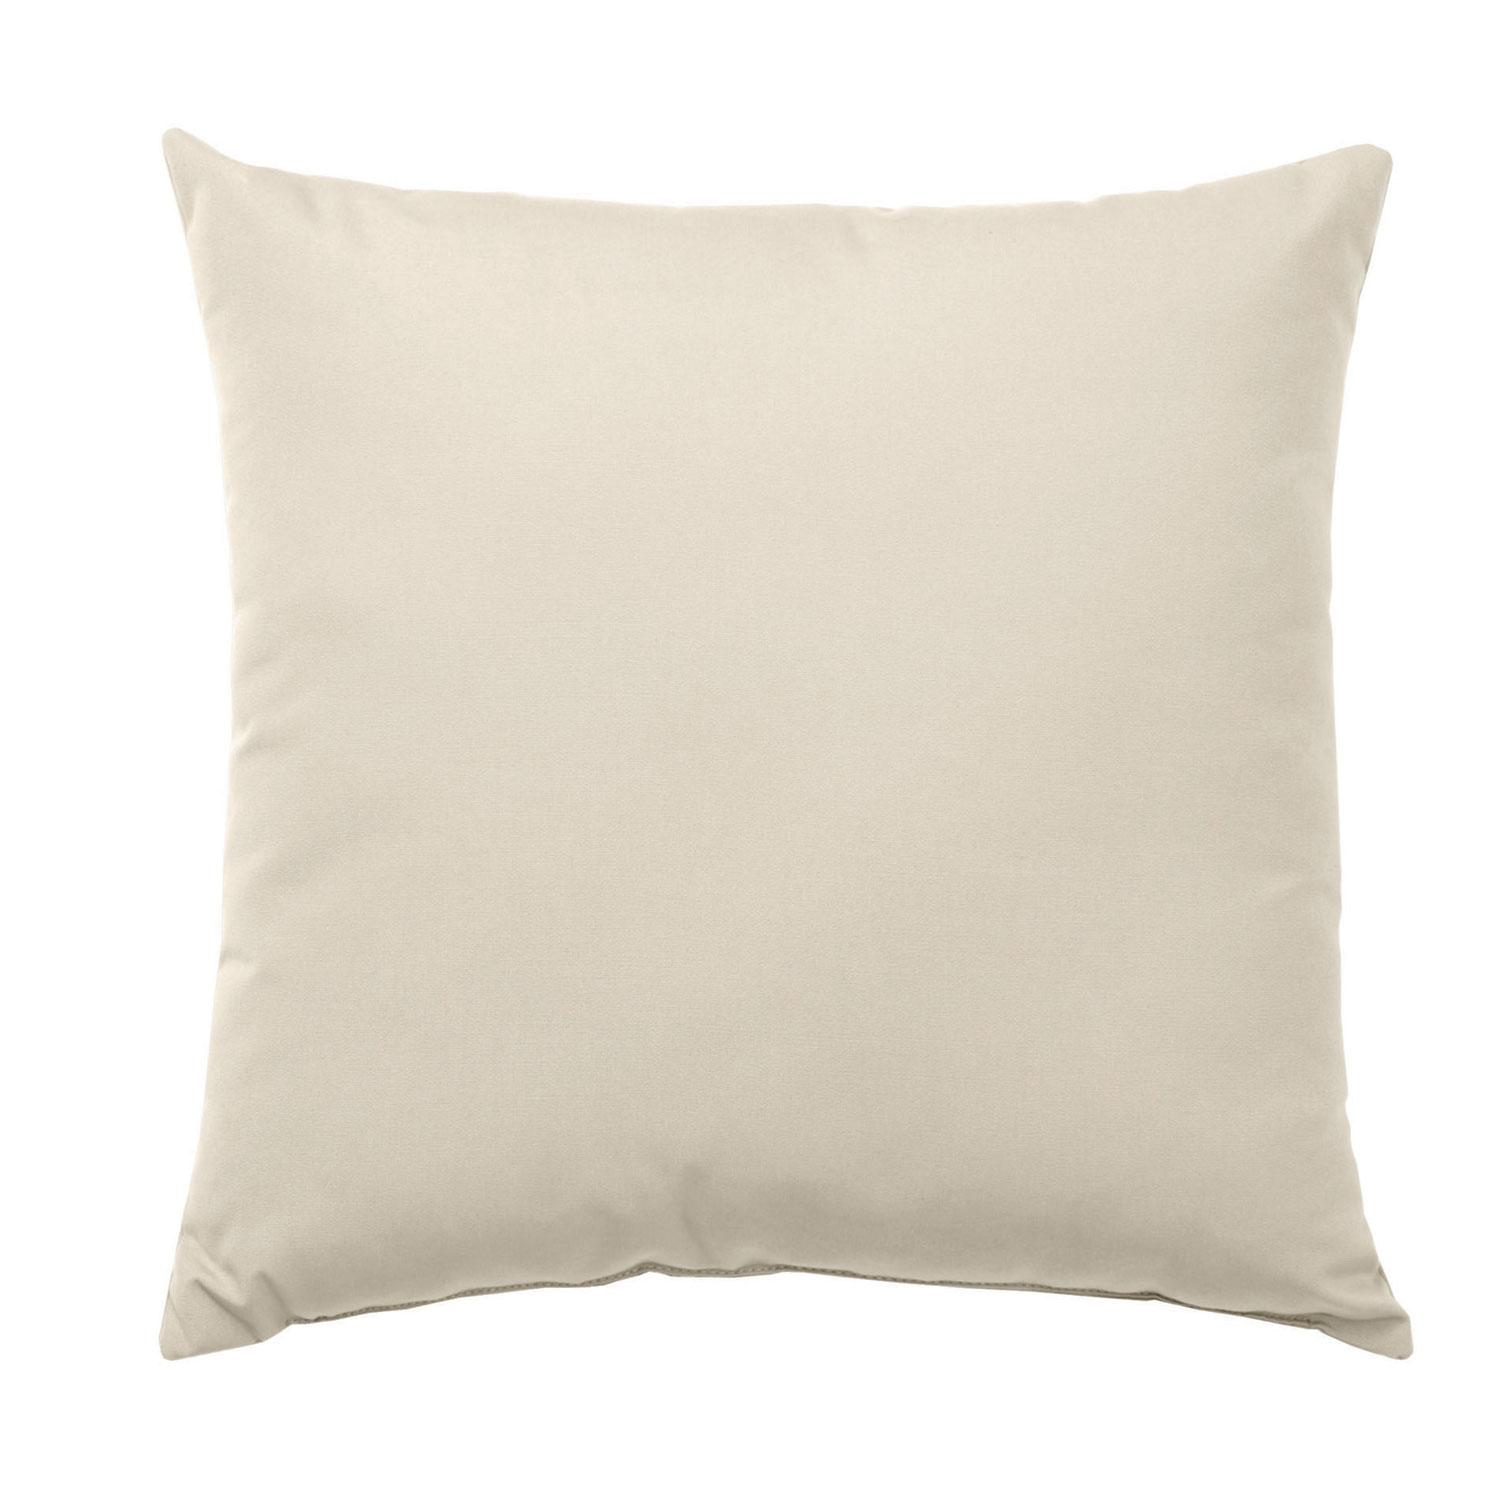 Sunbrella%AE Outdoor Throw Pillow (16x16x5